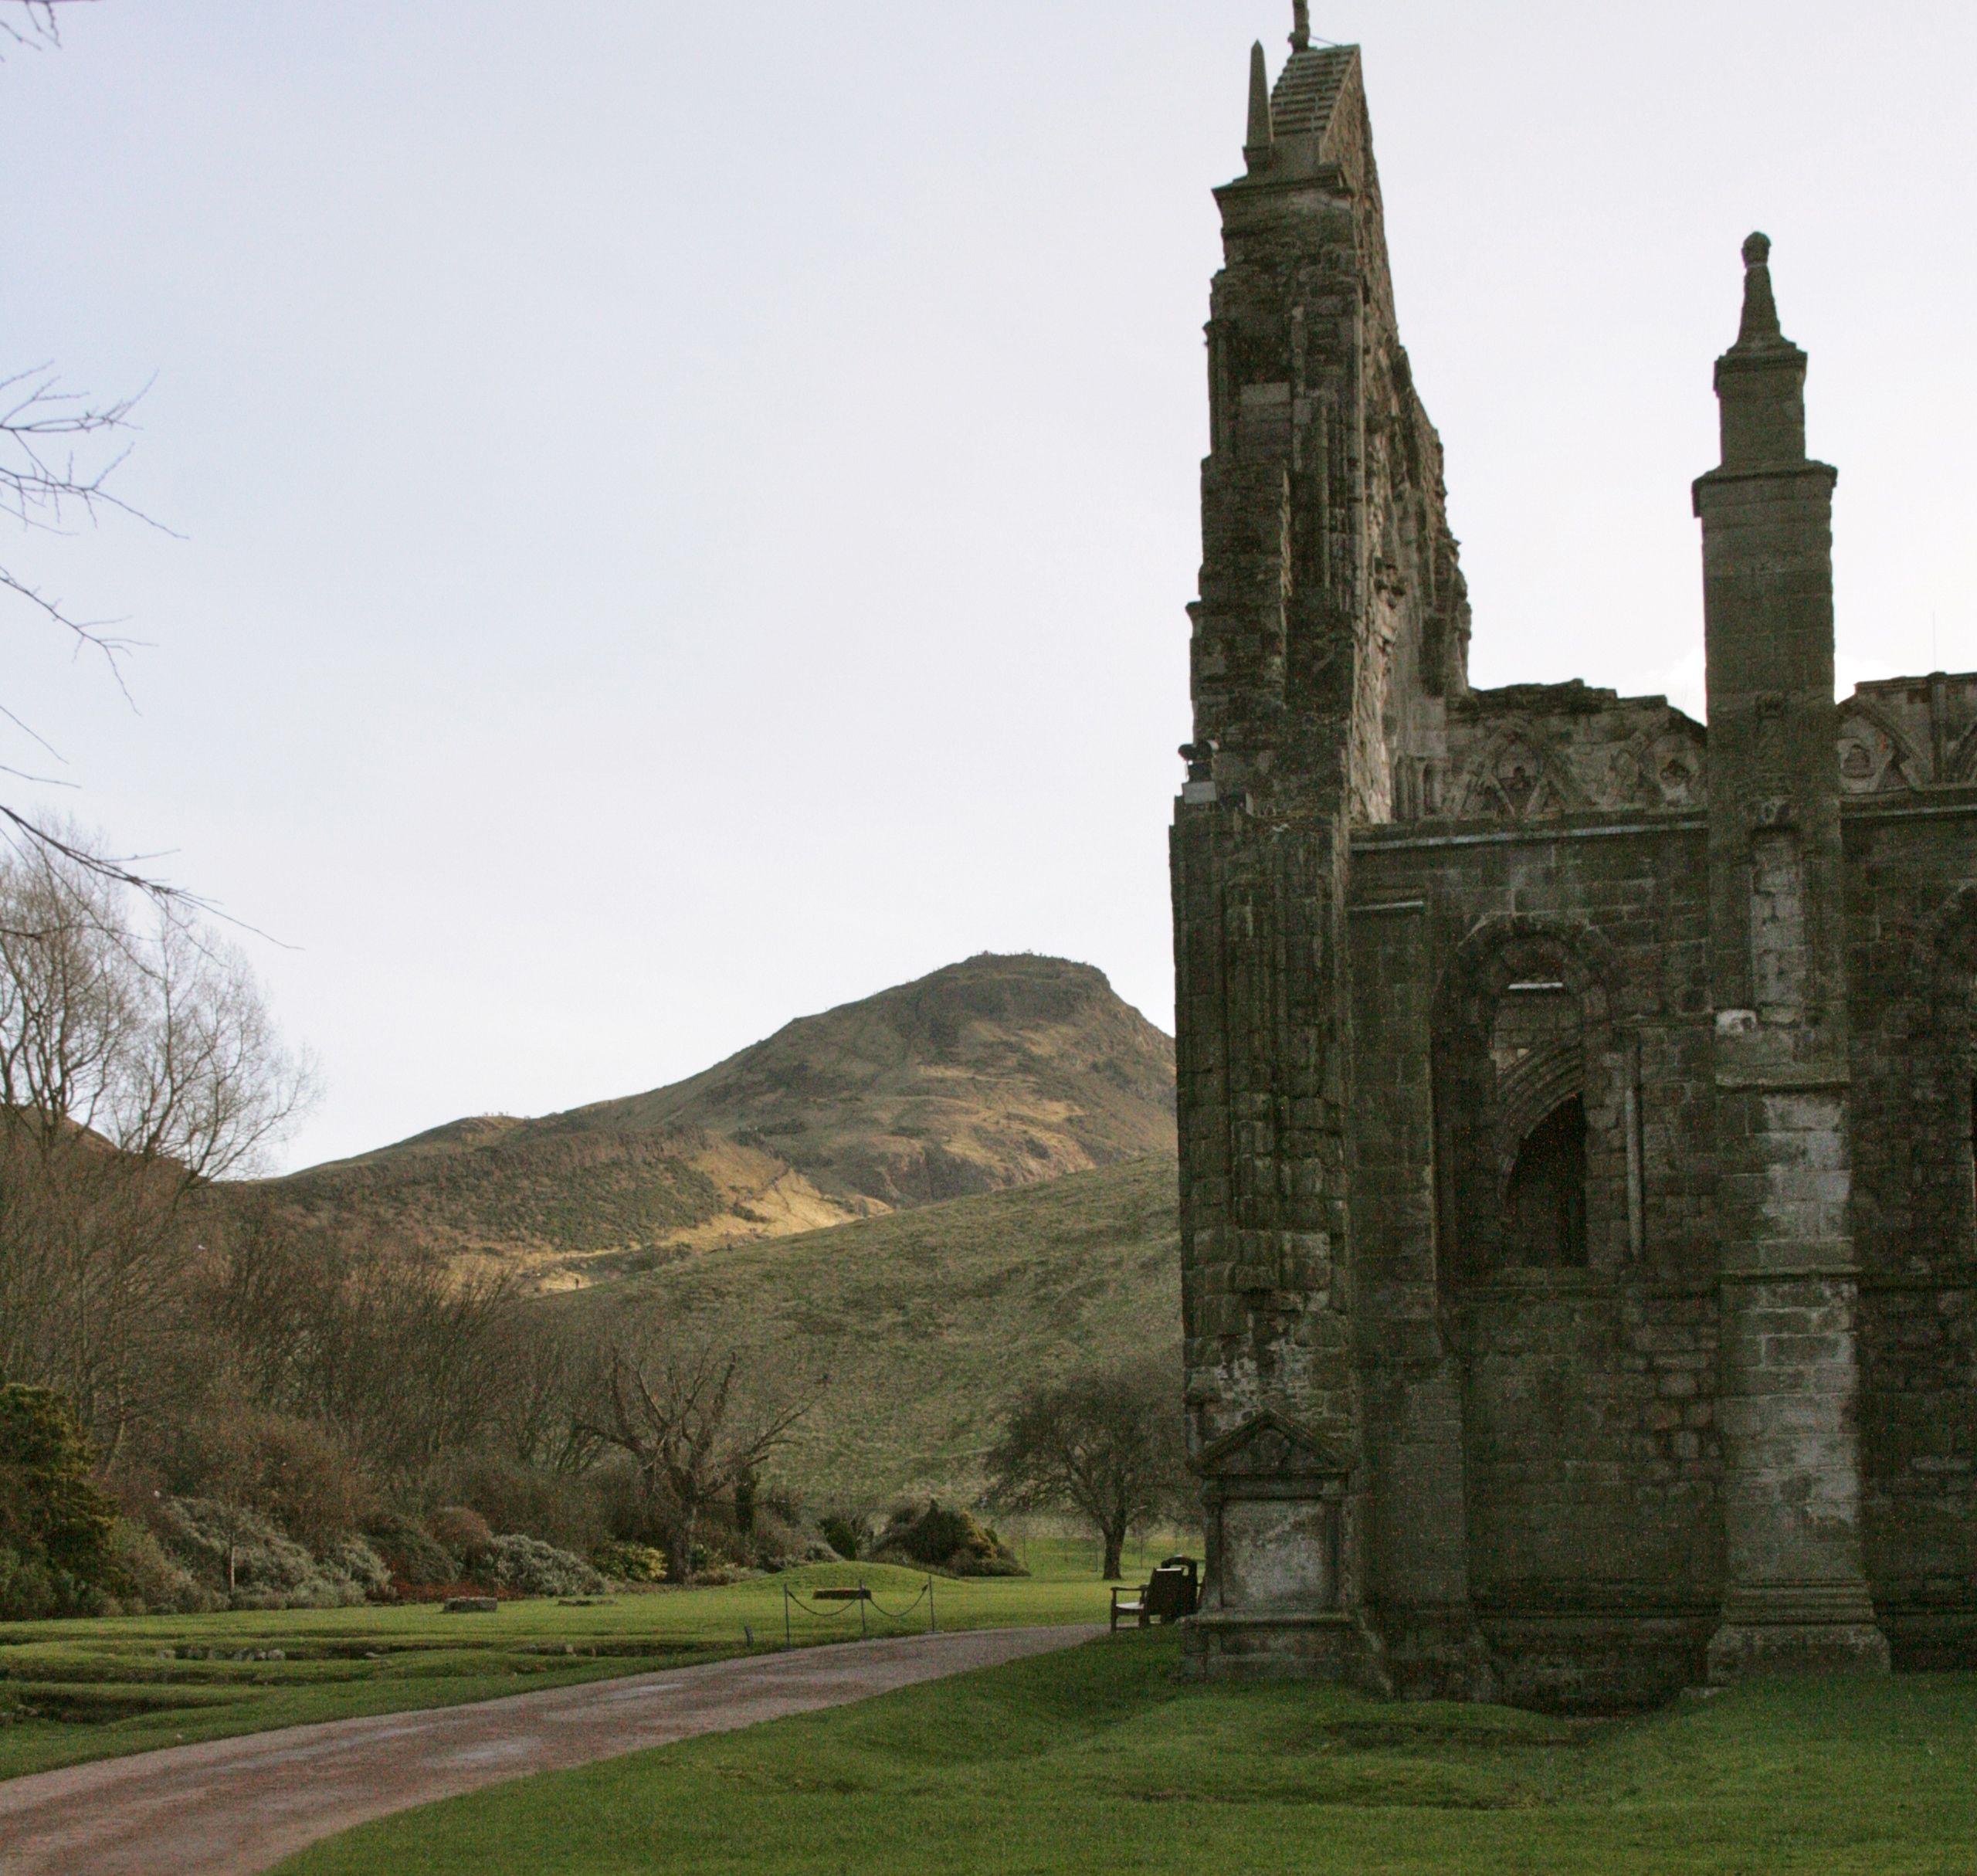 Arthur's Seat lies in the distance, seen from the abbey ruins behind  Holyrood Castle.